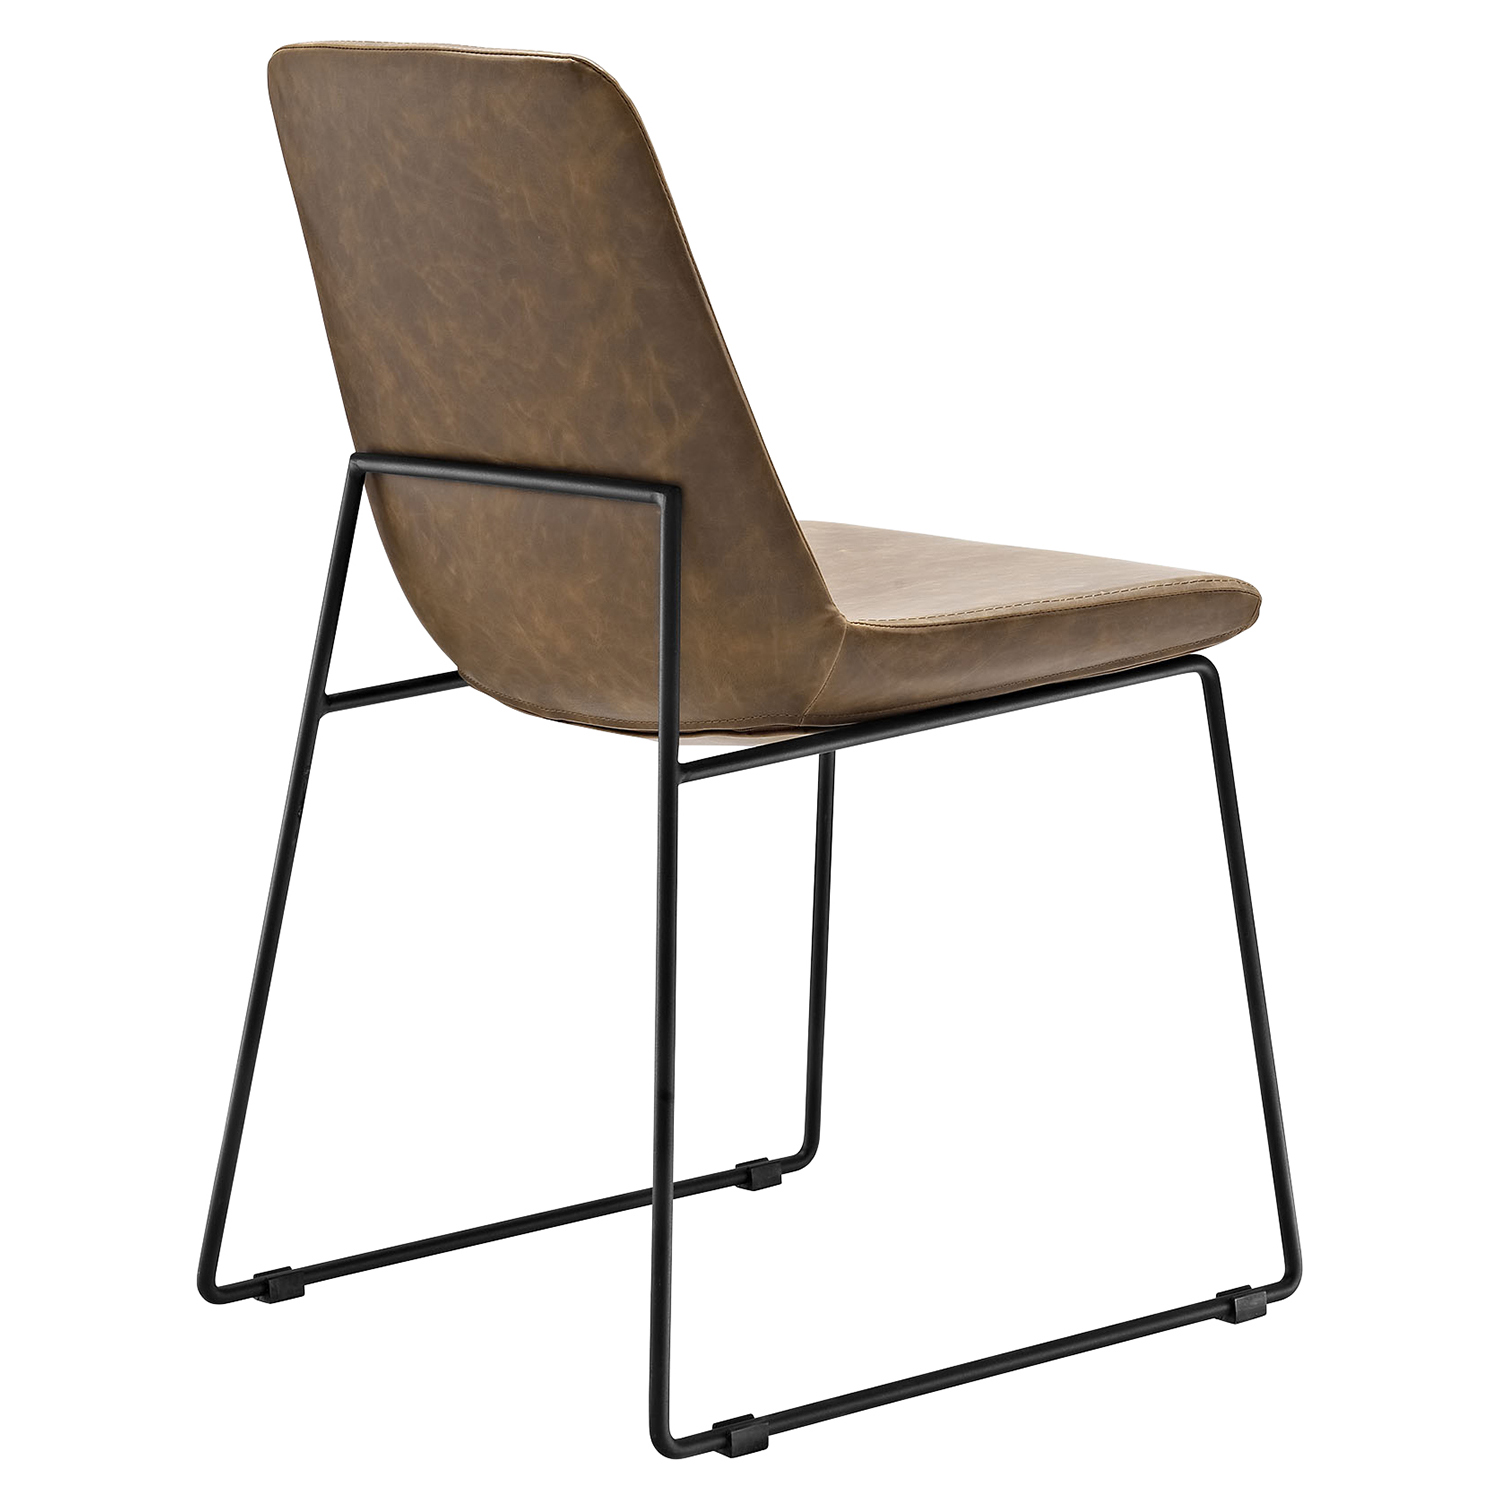 Invite Leatherette Dining Side Chair - Brown - EEI-1805-BRN